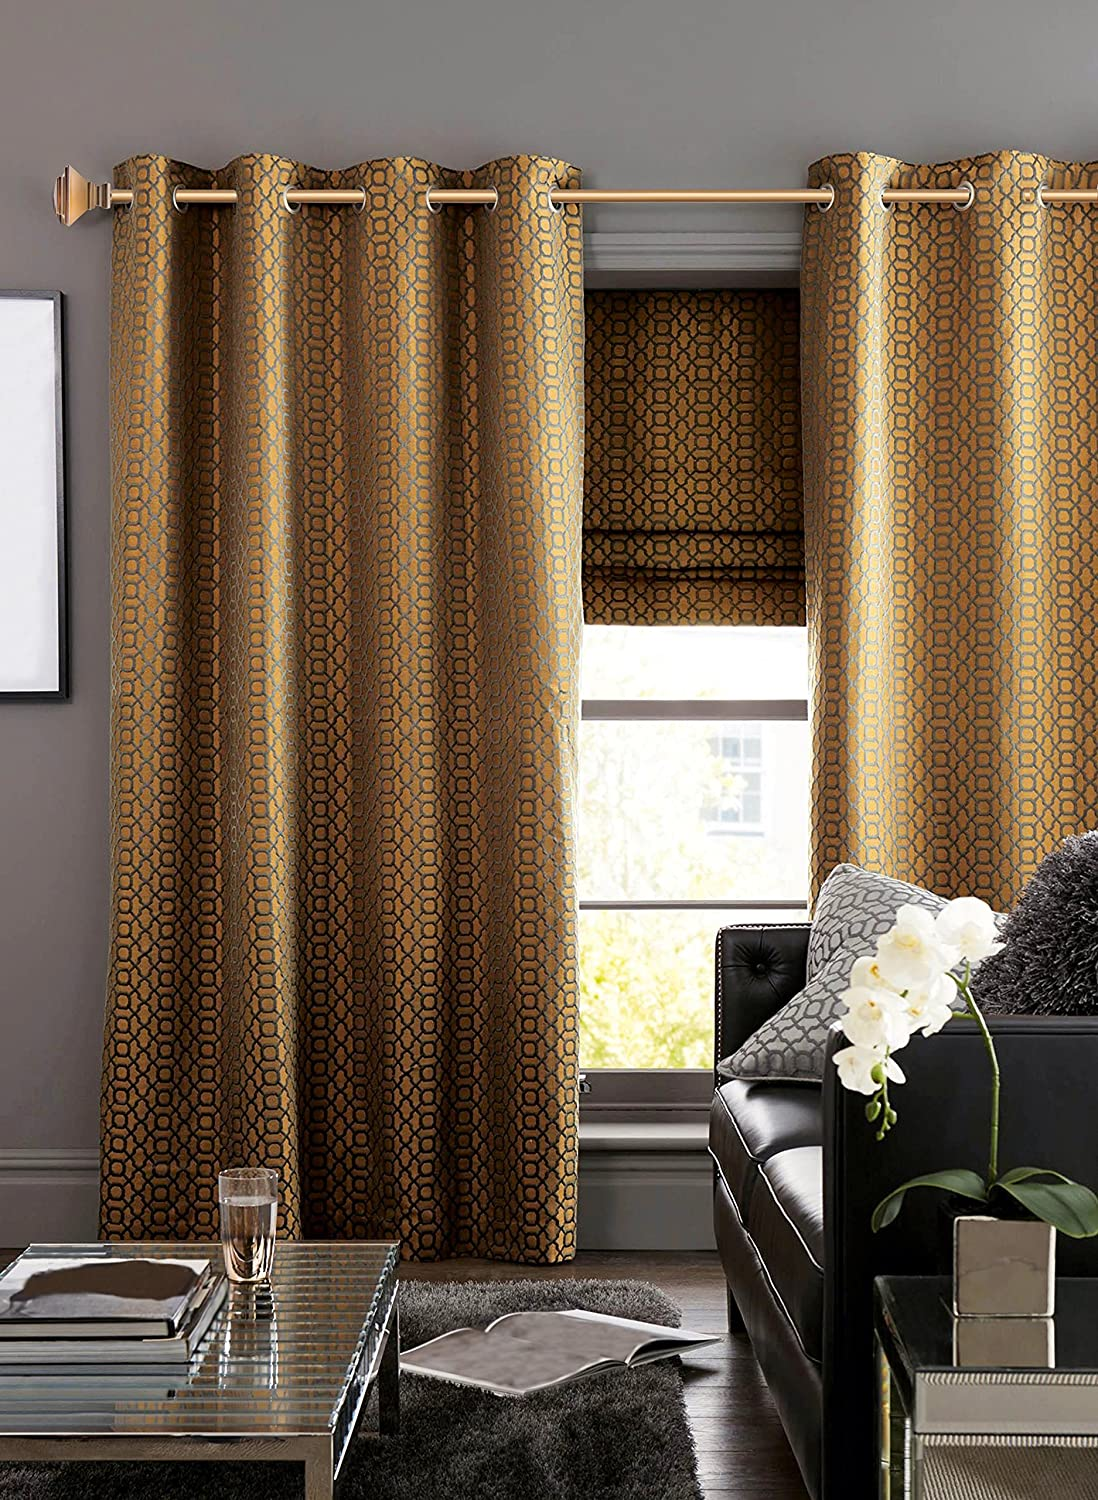 Amazon.com: Sheffield Home Pyramid in Warm Gold, Curtain Rod by, AMG ...